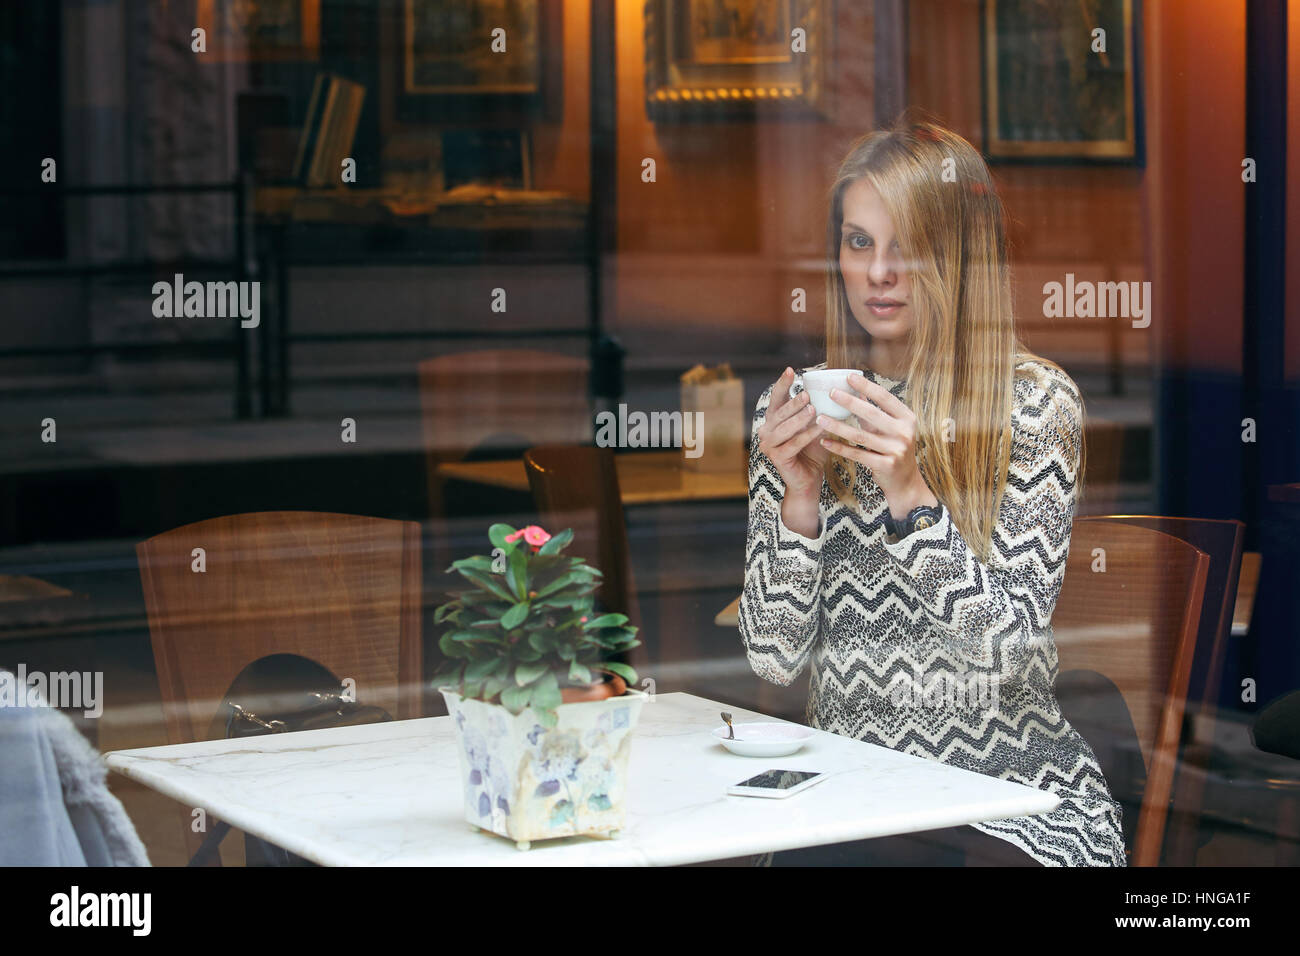 Woman with a cup of coffee. Urban shot through the window - Stock Image